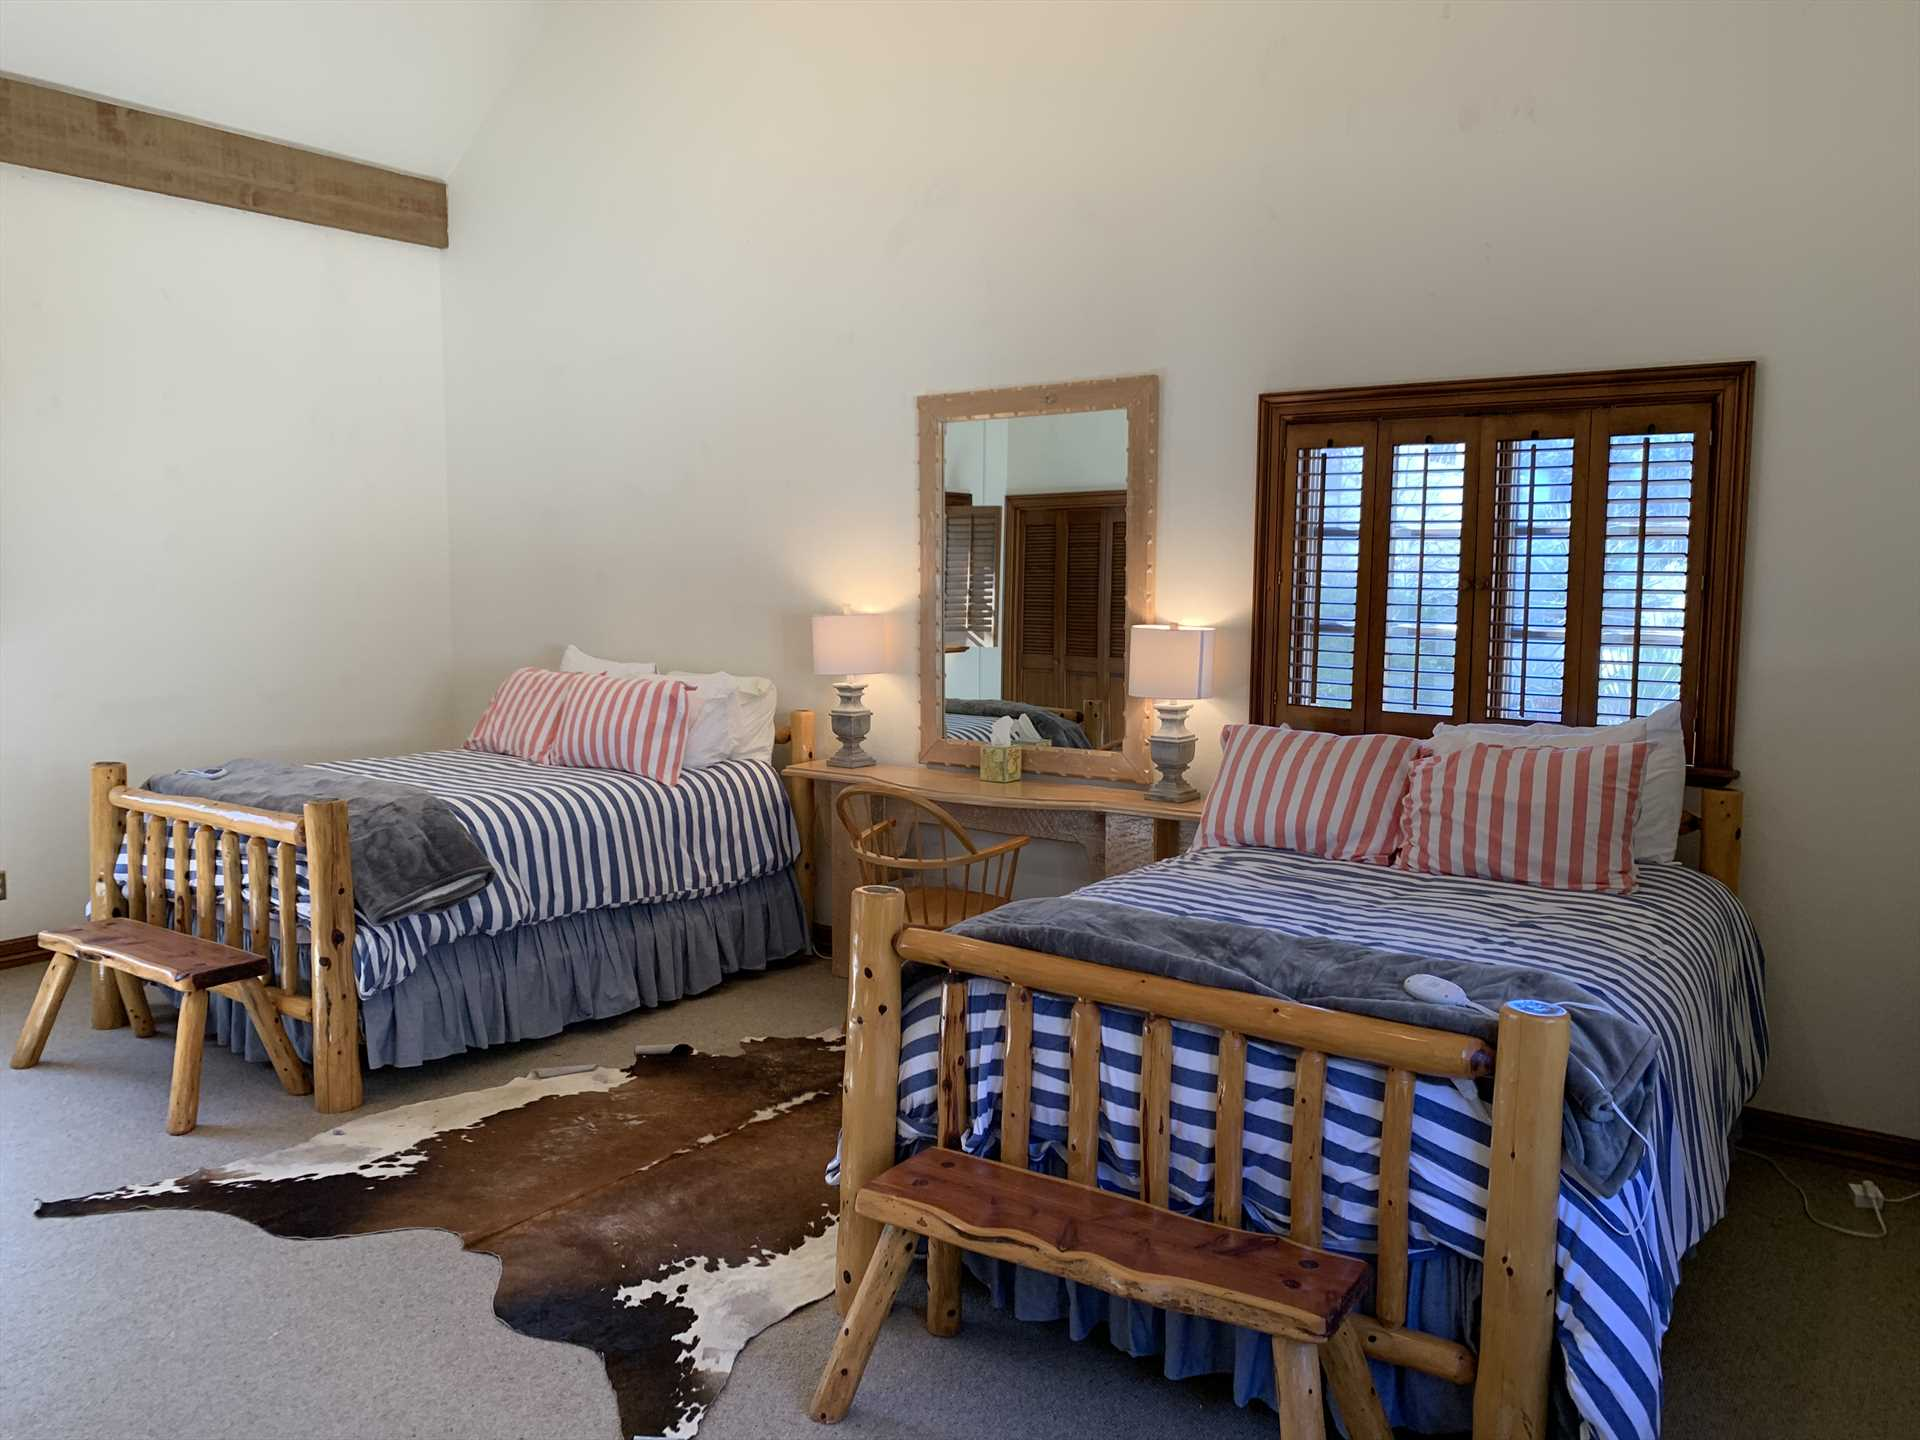 The second bedroom provides sweet slumber for up to four guests on two luxuriously soft queen beds.